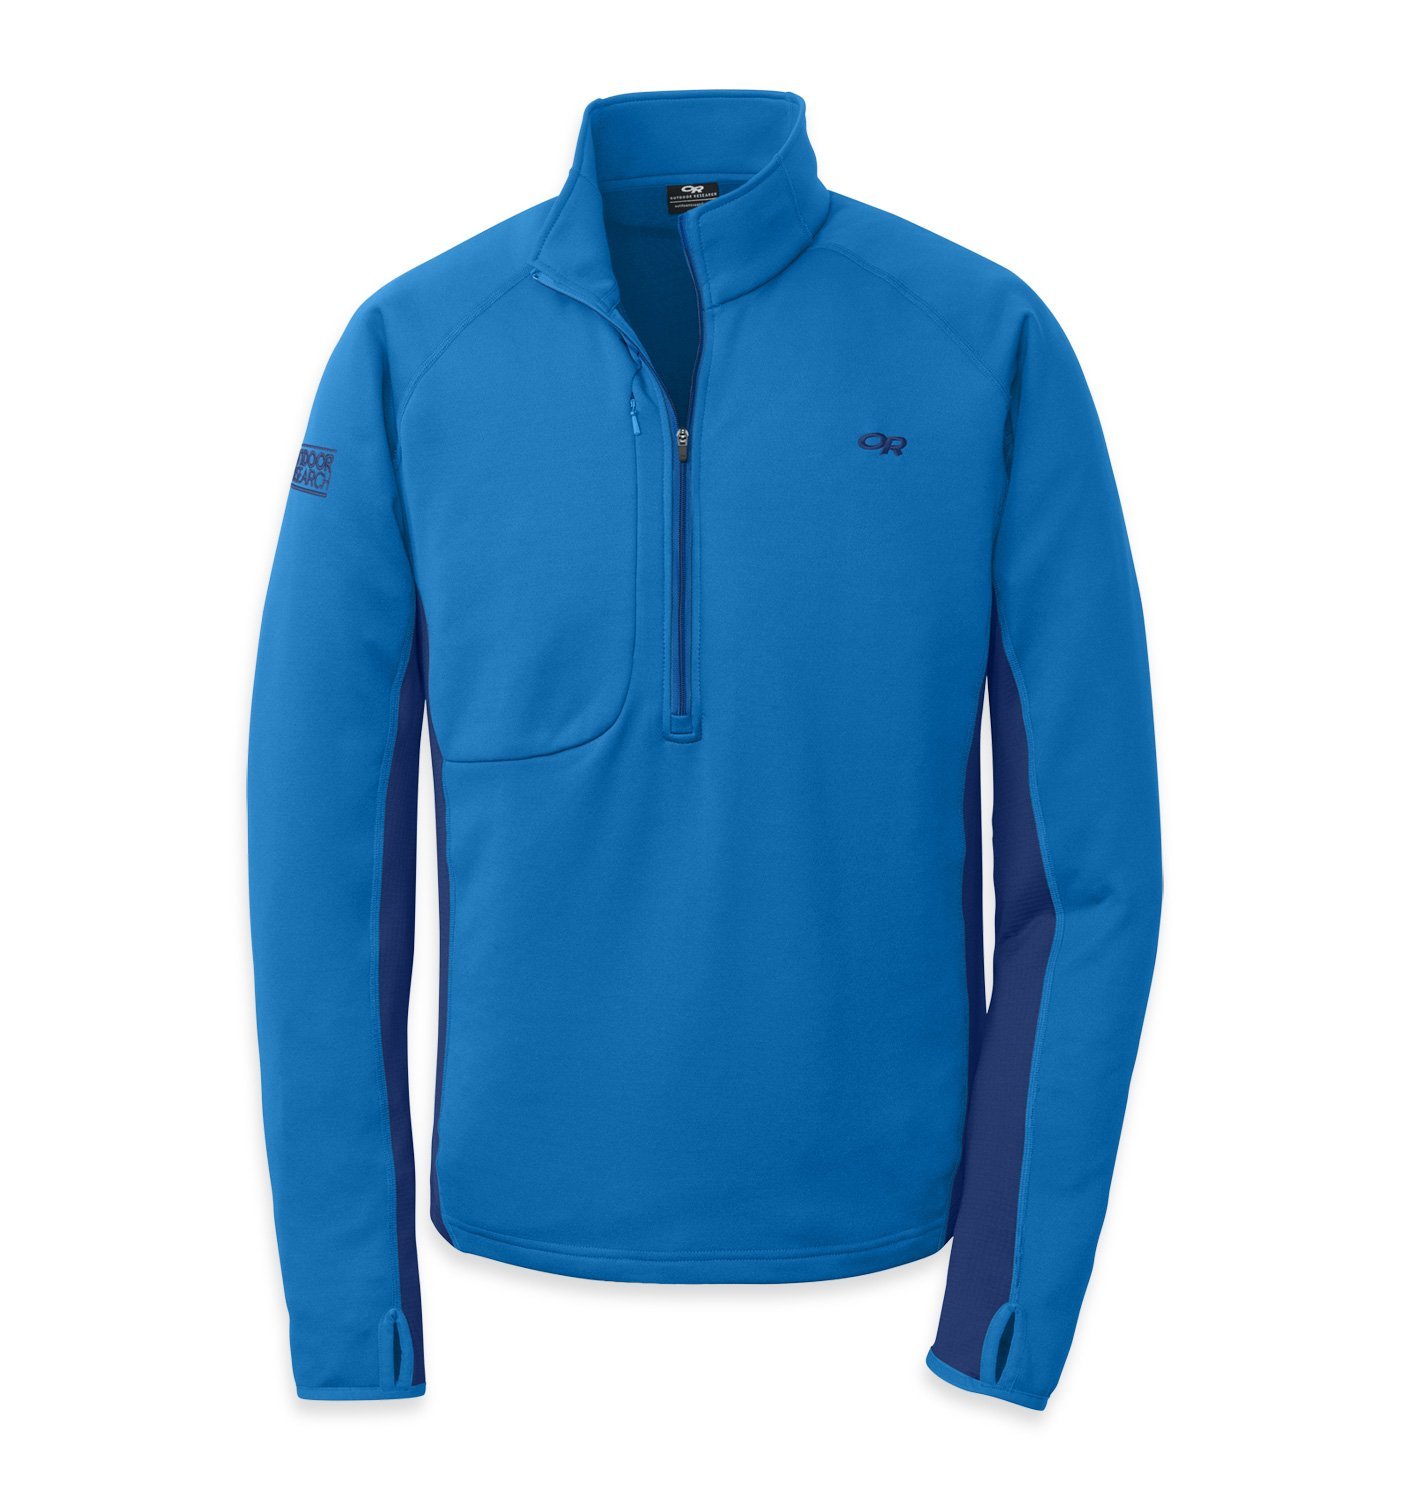 Outdoor Research Men's Radiant Hybrid Pullover, Glacier/Baltic, Medium by Outdoor Research